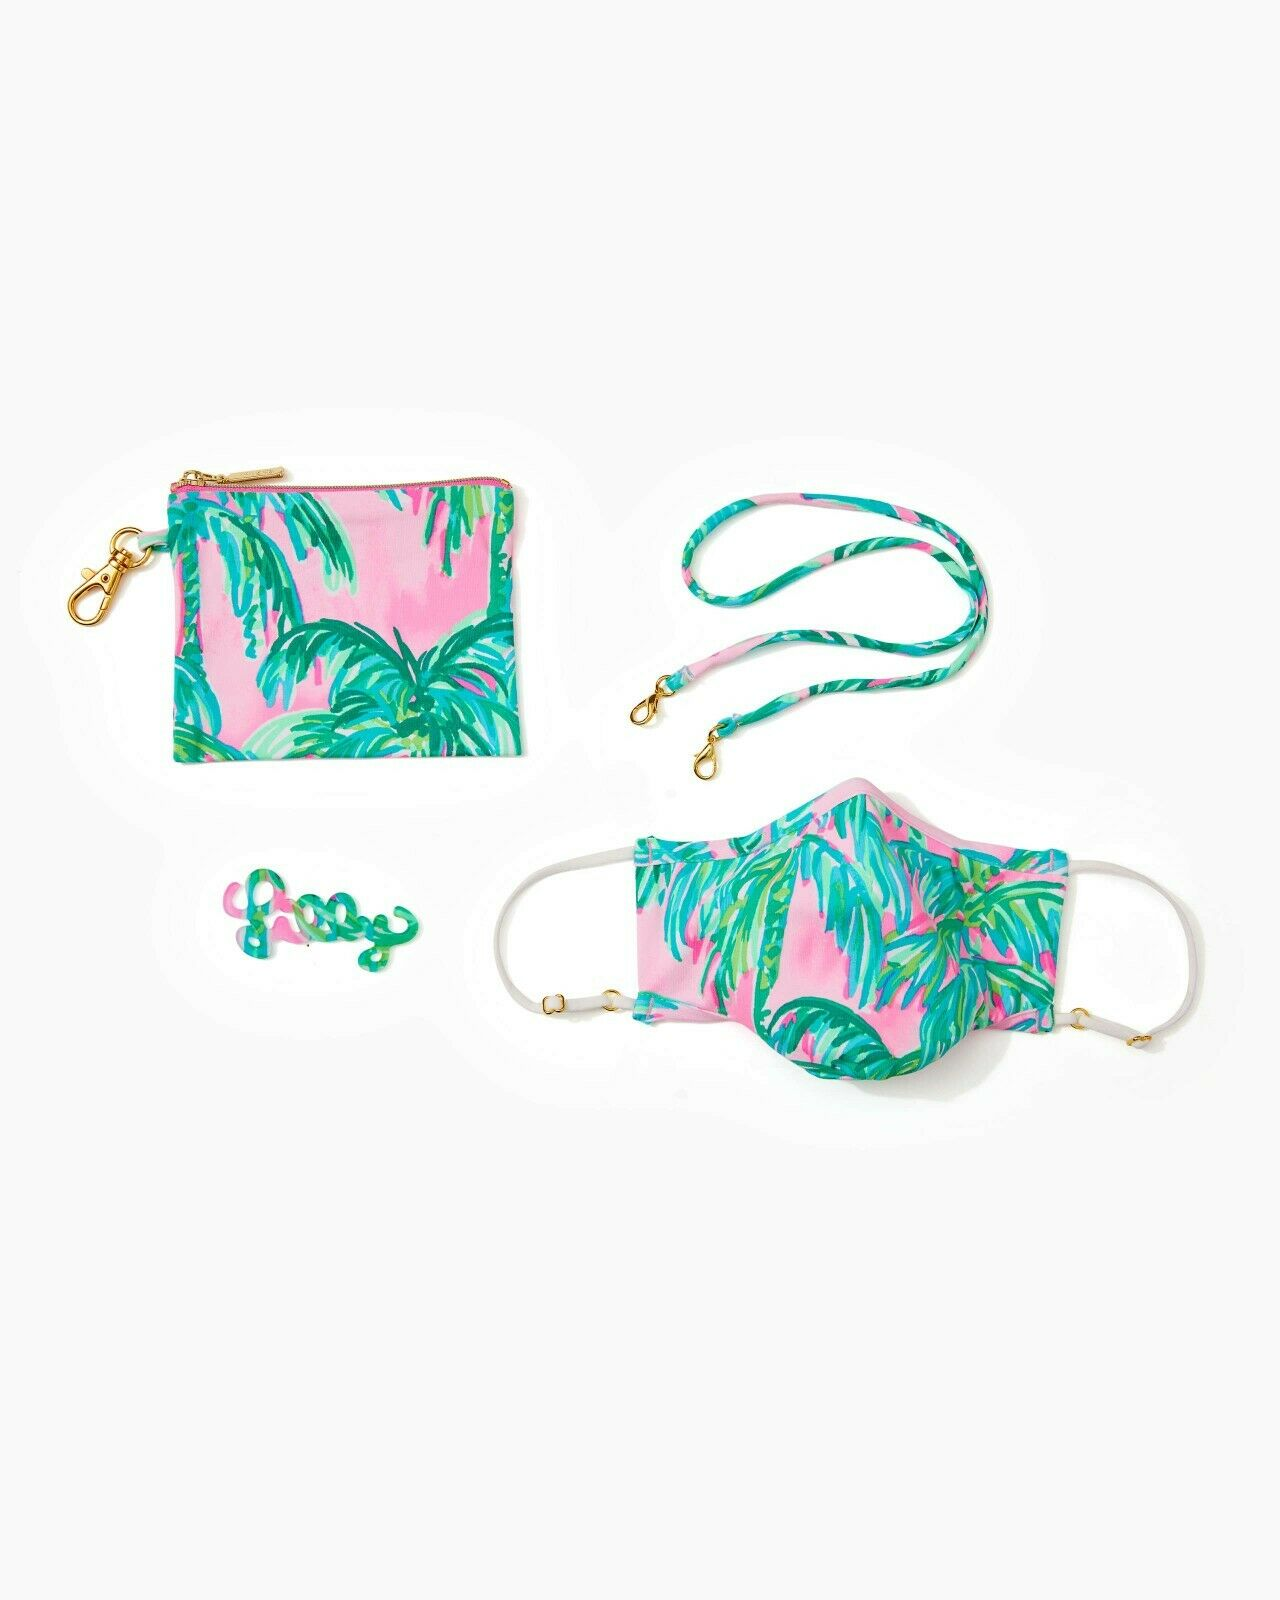 NWT Authentic Lilly Pulitzer Face Masks Set NEW